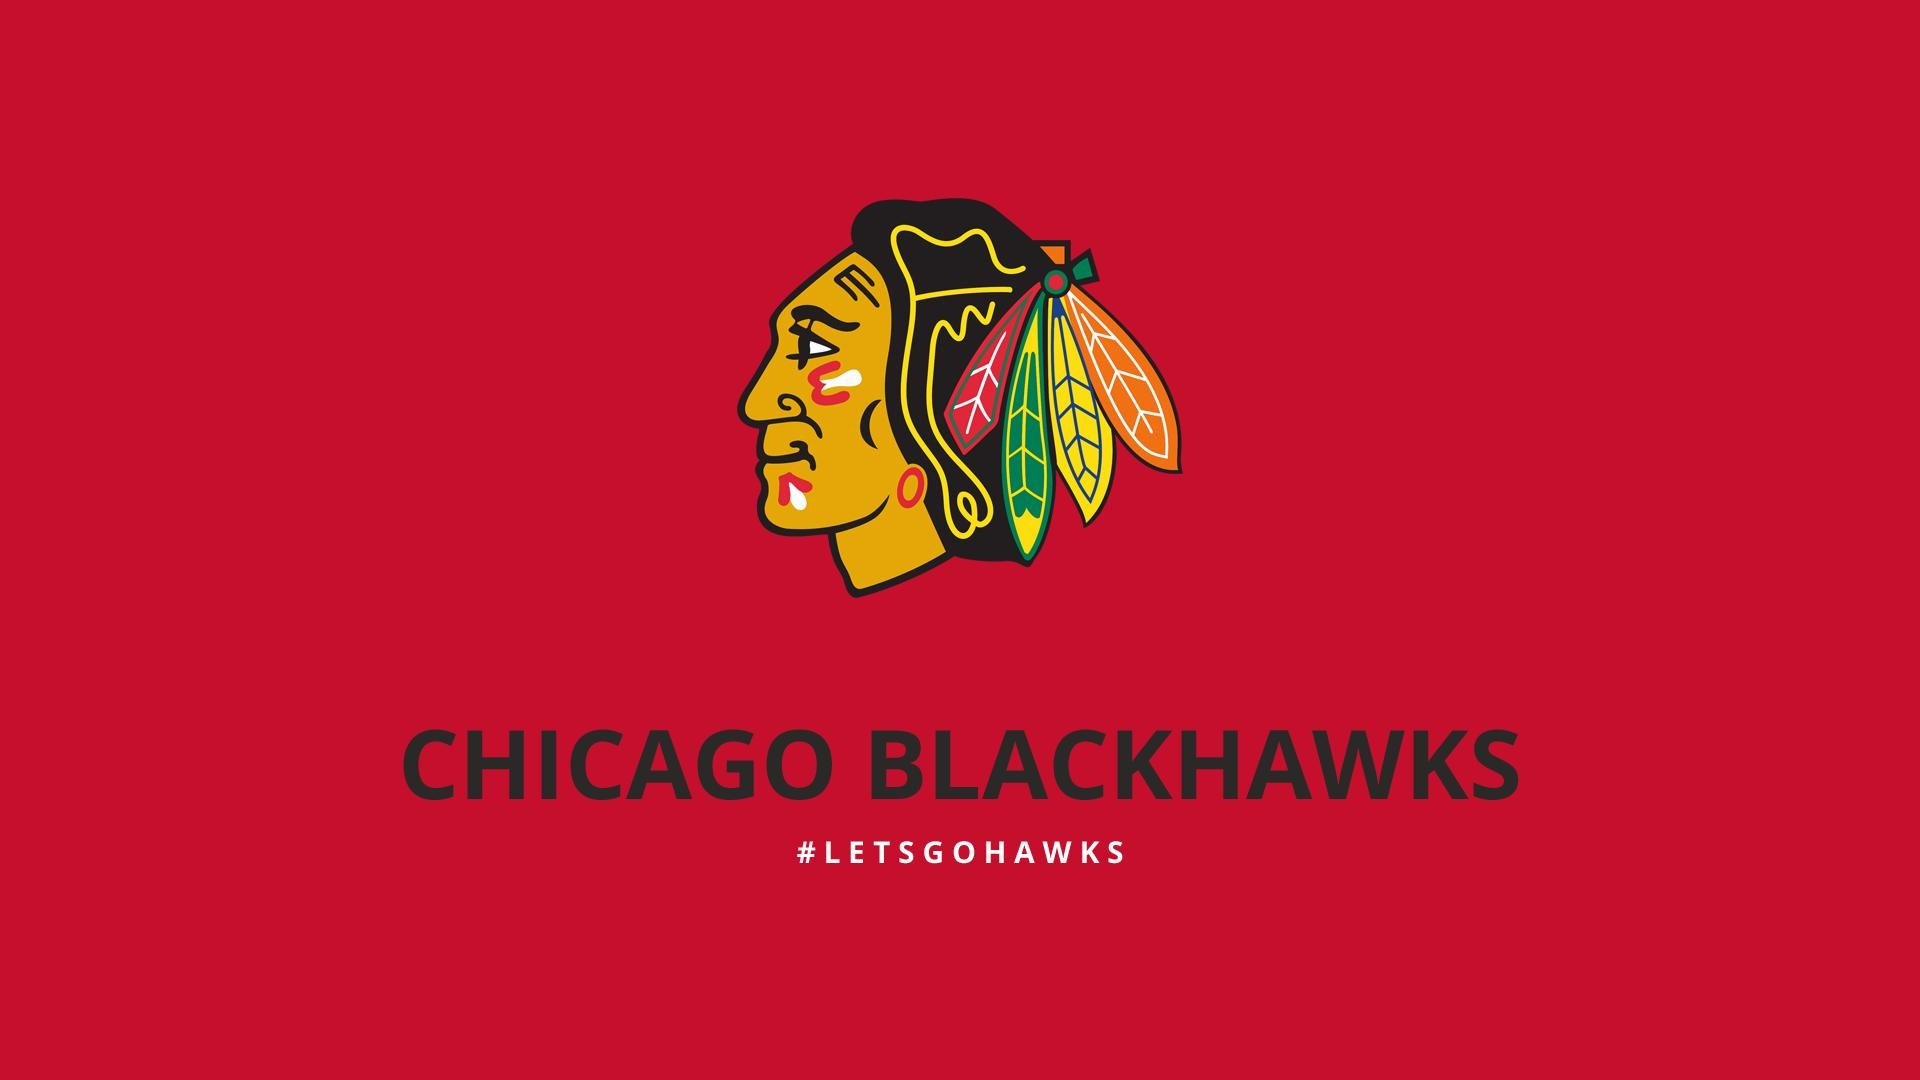 Chicago Blackhawks Wallpaper For IPhone (66+ Images